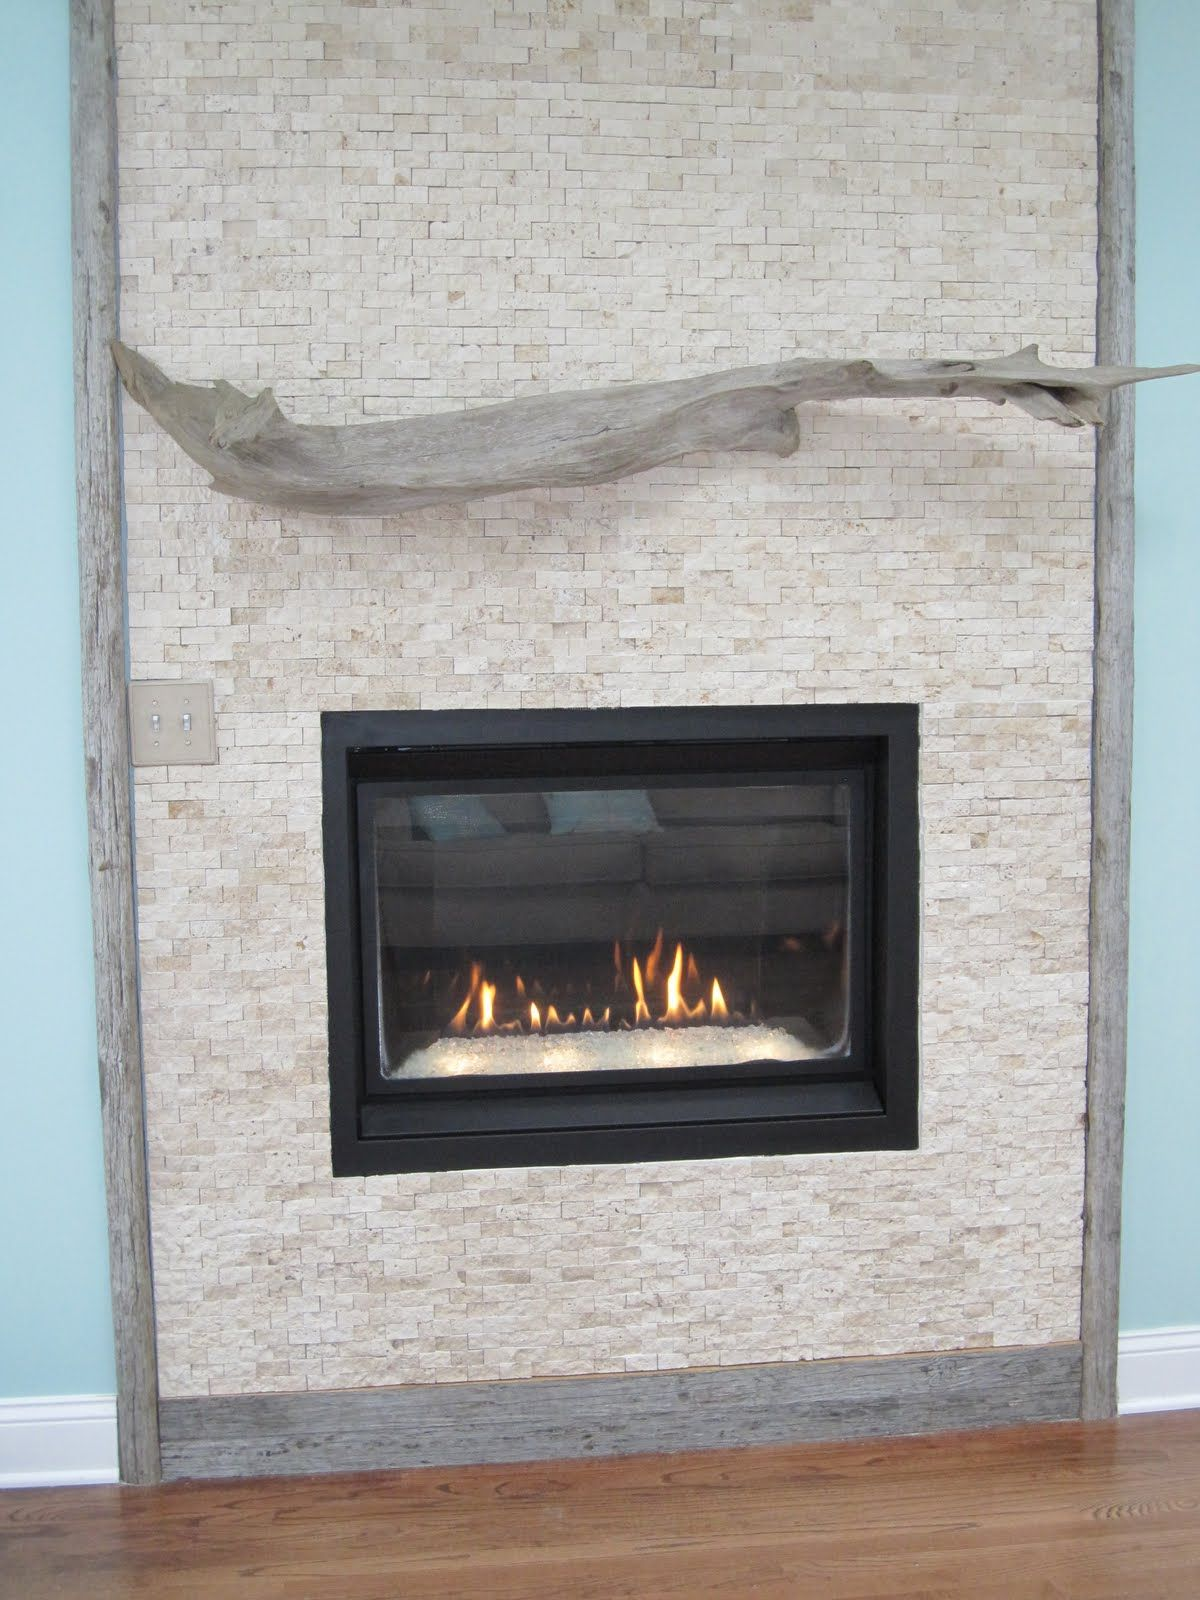 Add A Mantle To Gas Fireplace When We Renovated Our Beach Home Decided